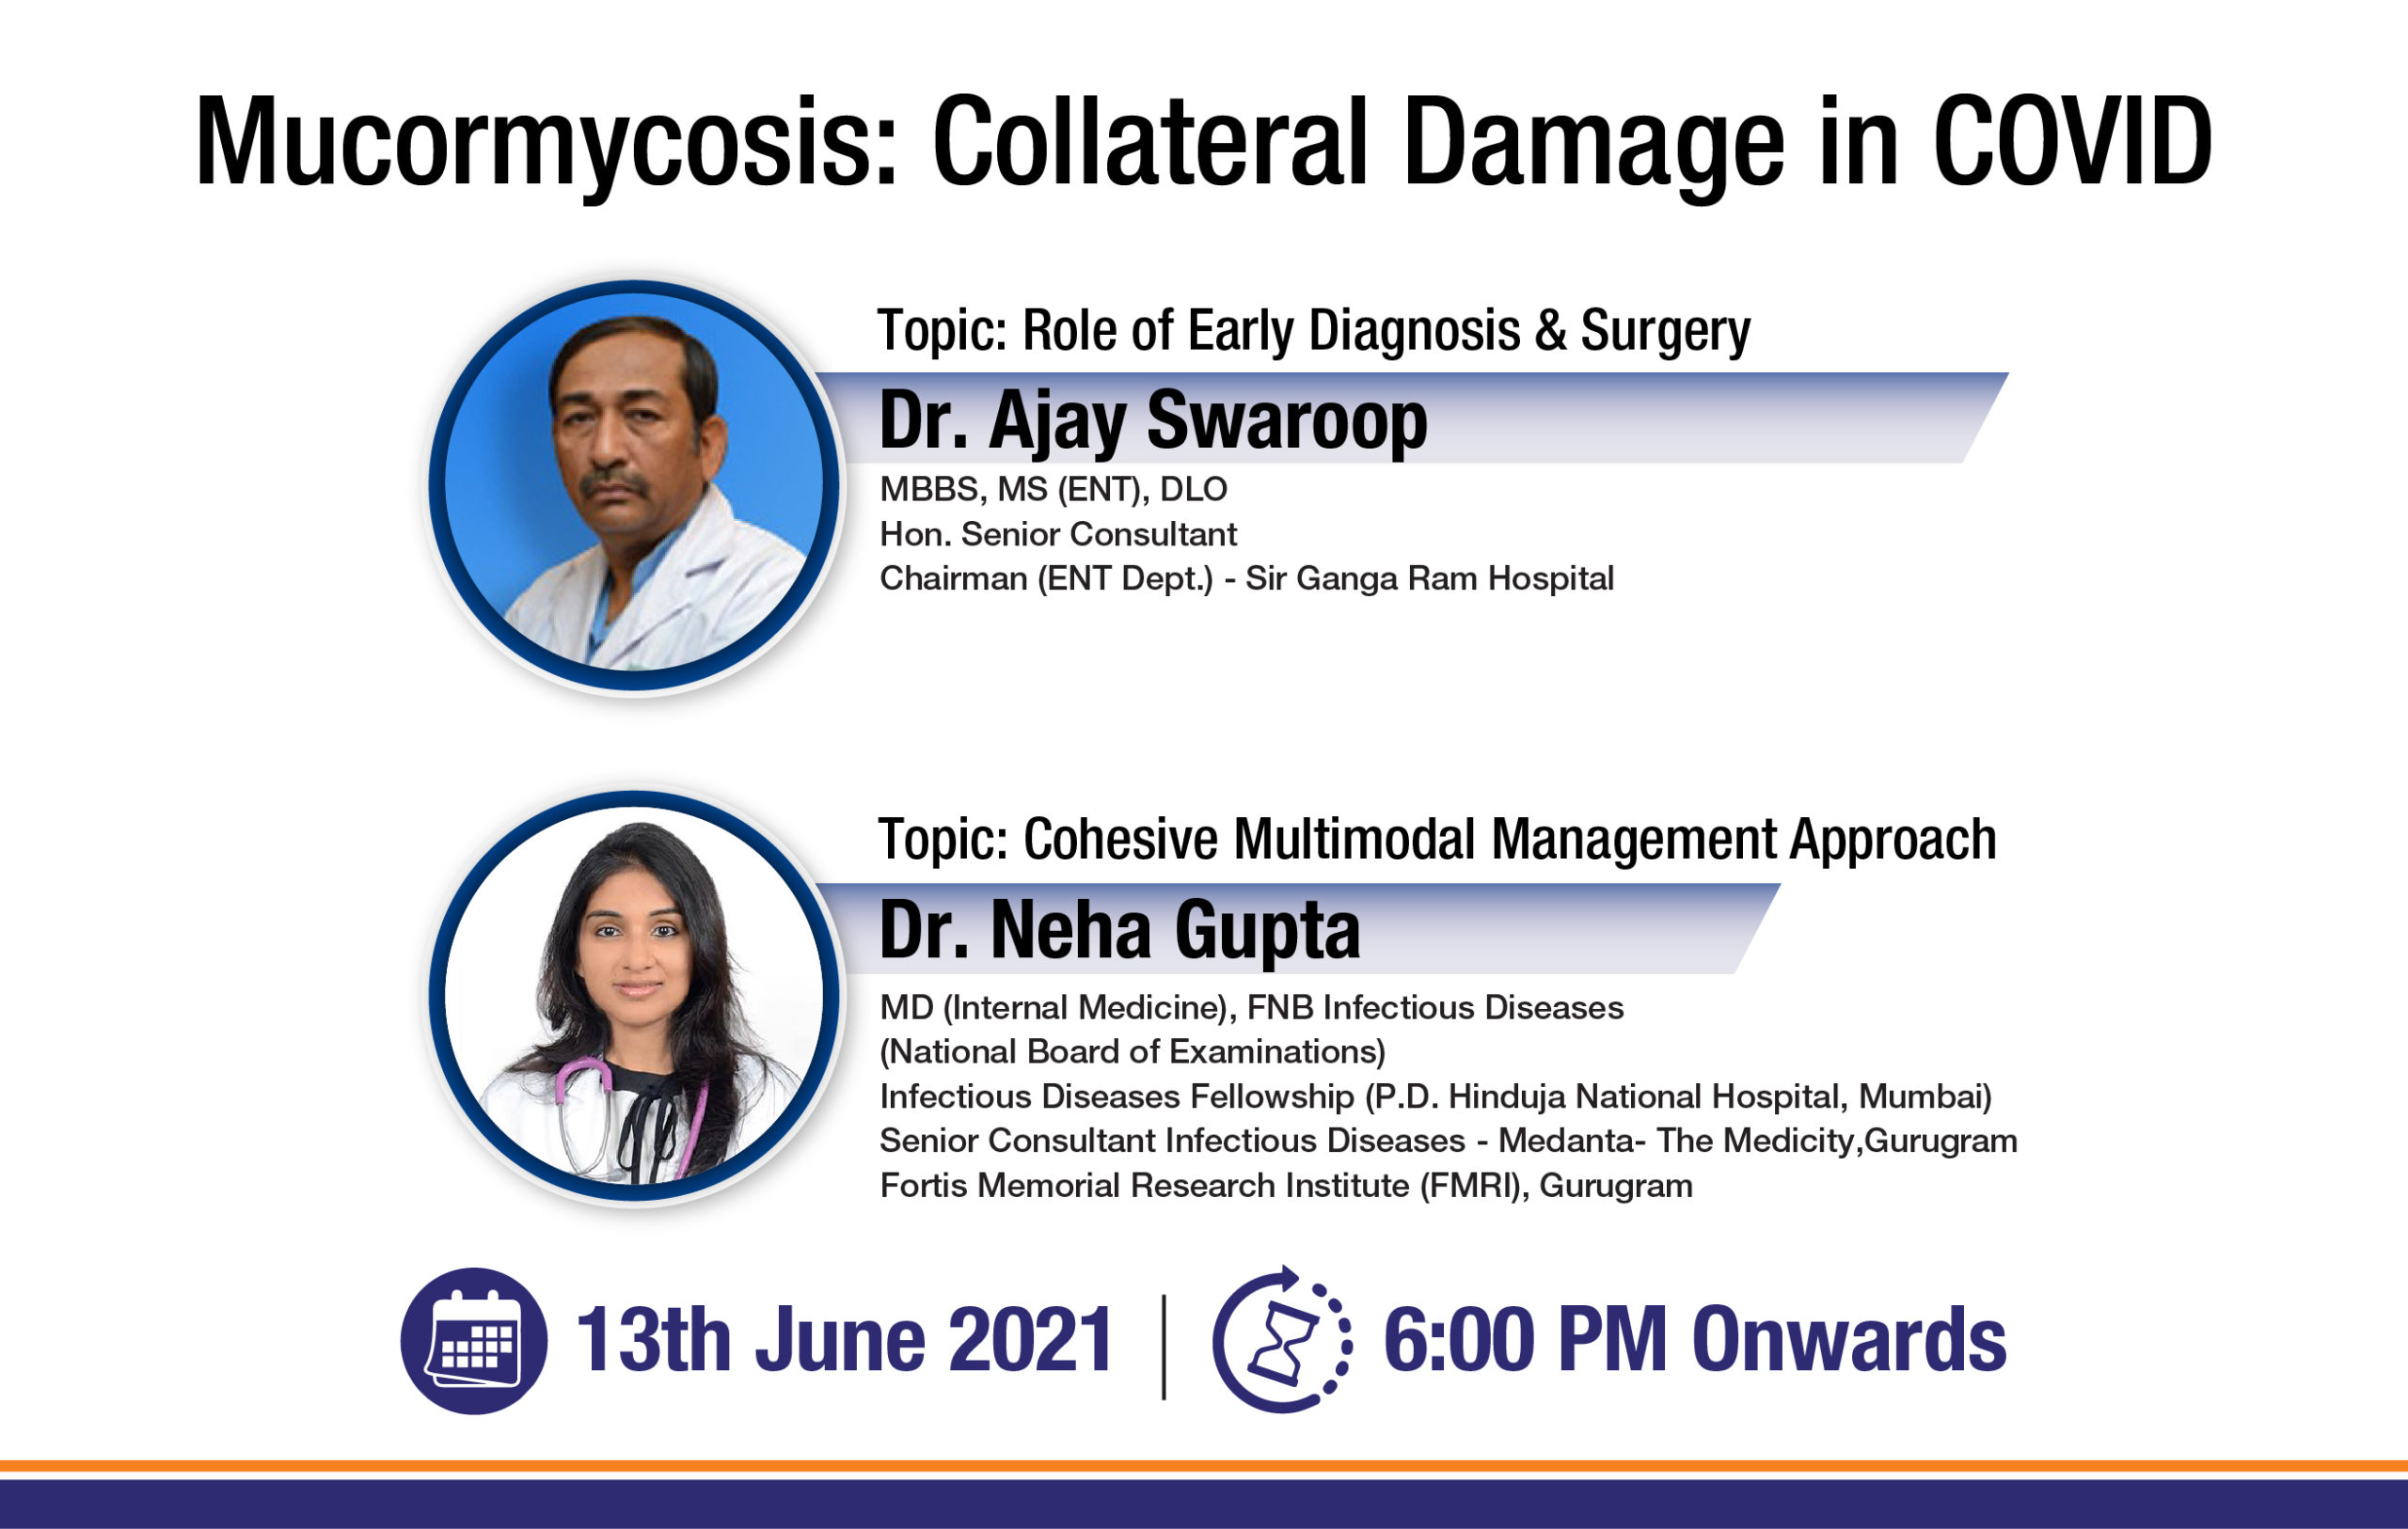 Mucormycosis: Collateral Damage in COVID